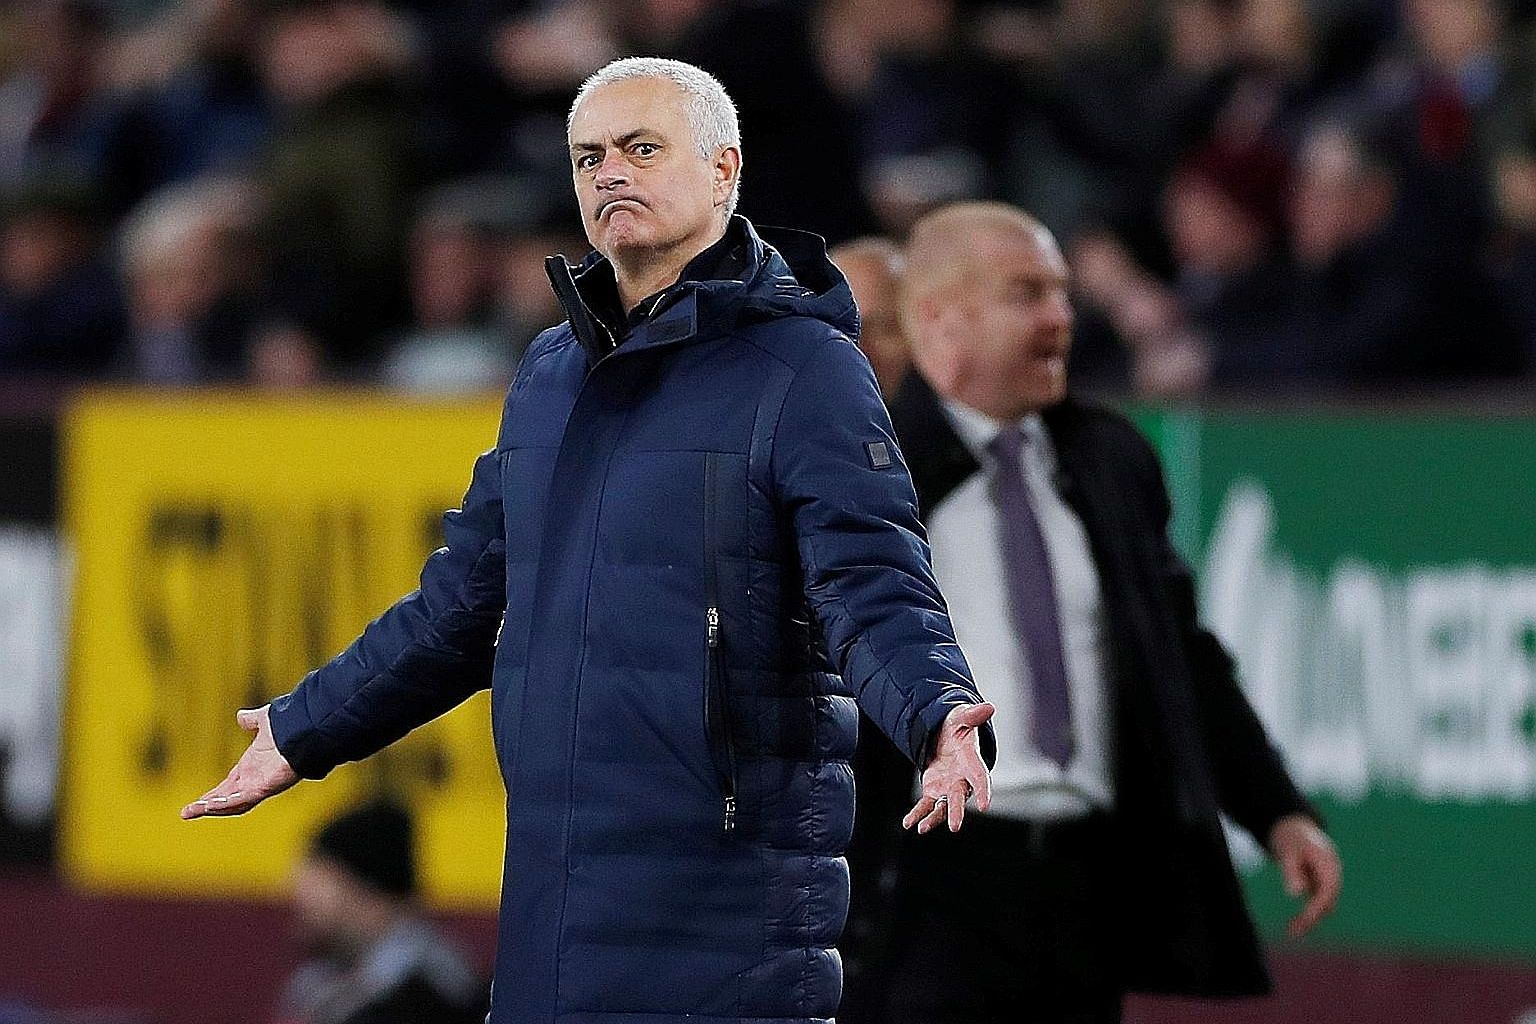 """Tottenham Hotspur manager Jose Mourinho gesturing during their 1-1 draw with Burnley at Turf Moor on Saturday. He later criticised midfielder Tanguy Ndombele, saying the Frenchman has to """"give us more""""."""